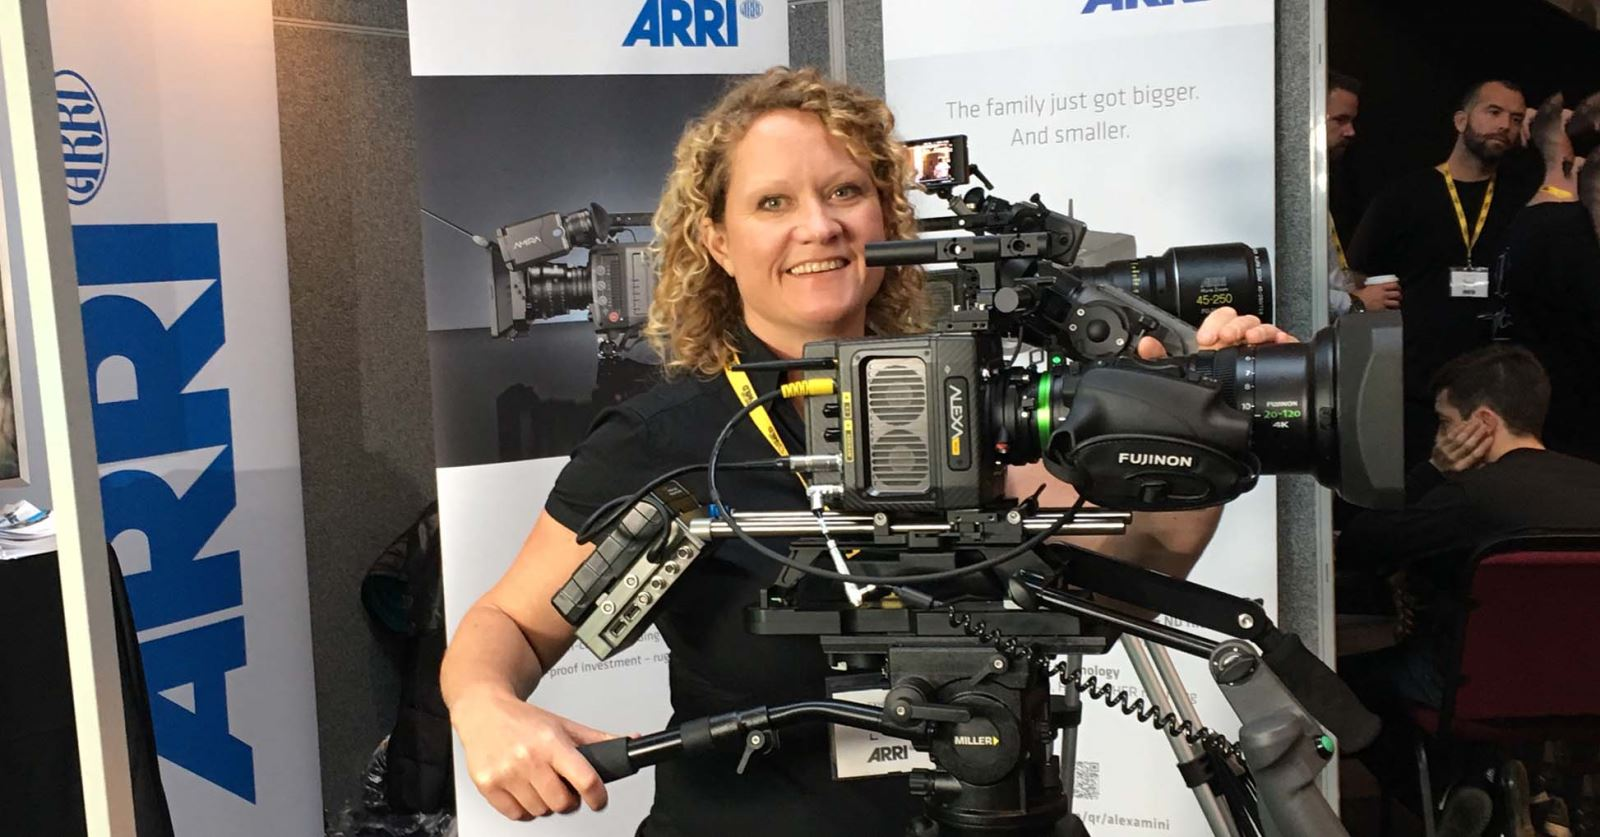 GTC and IAWF member DoP Gail Jenkinson taking an interest in an ARRI ALEXA with Fujinon lens at Wildscreen